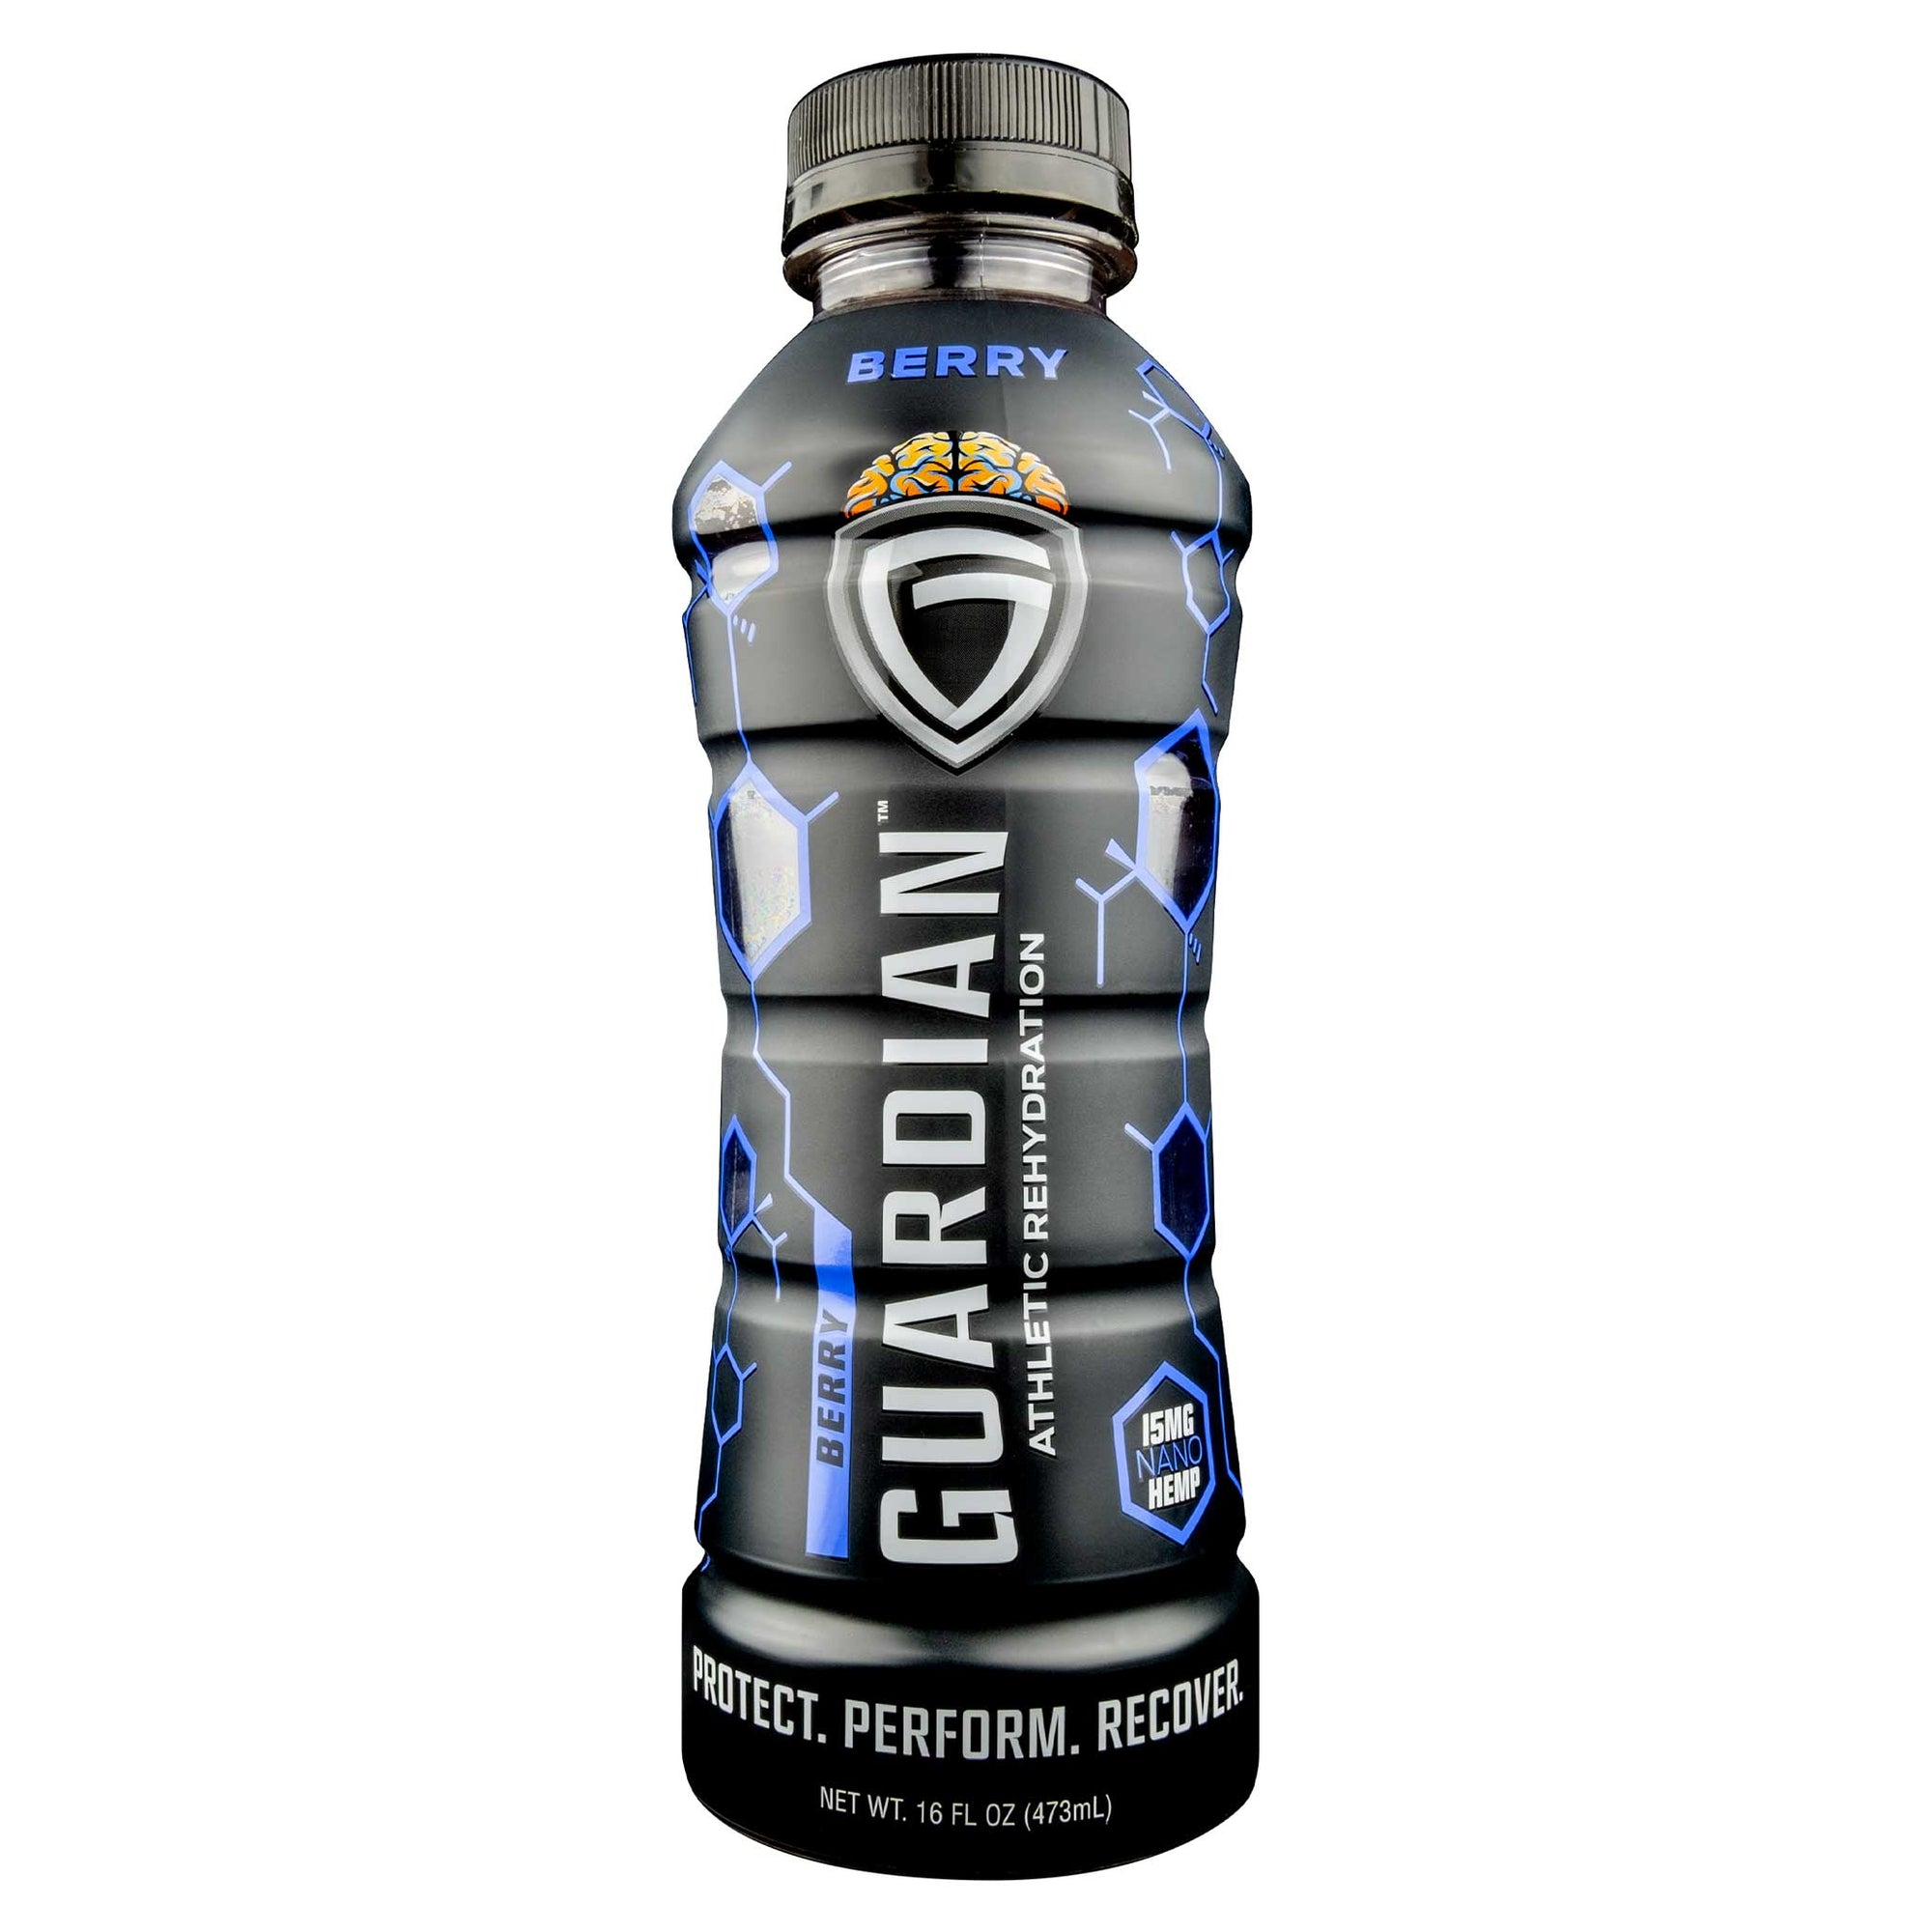 Six pack of Guardian Rehydration Berry Sports Hemp Drink